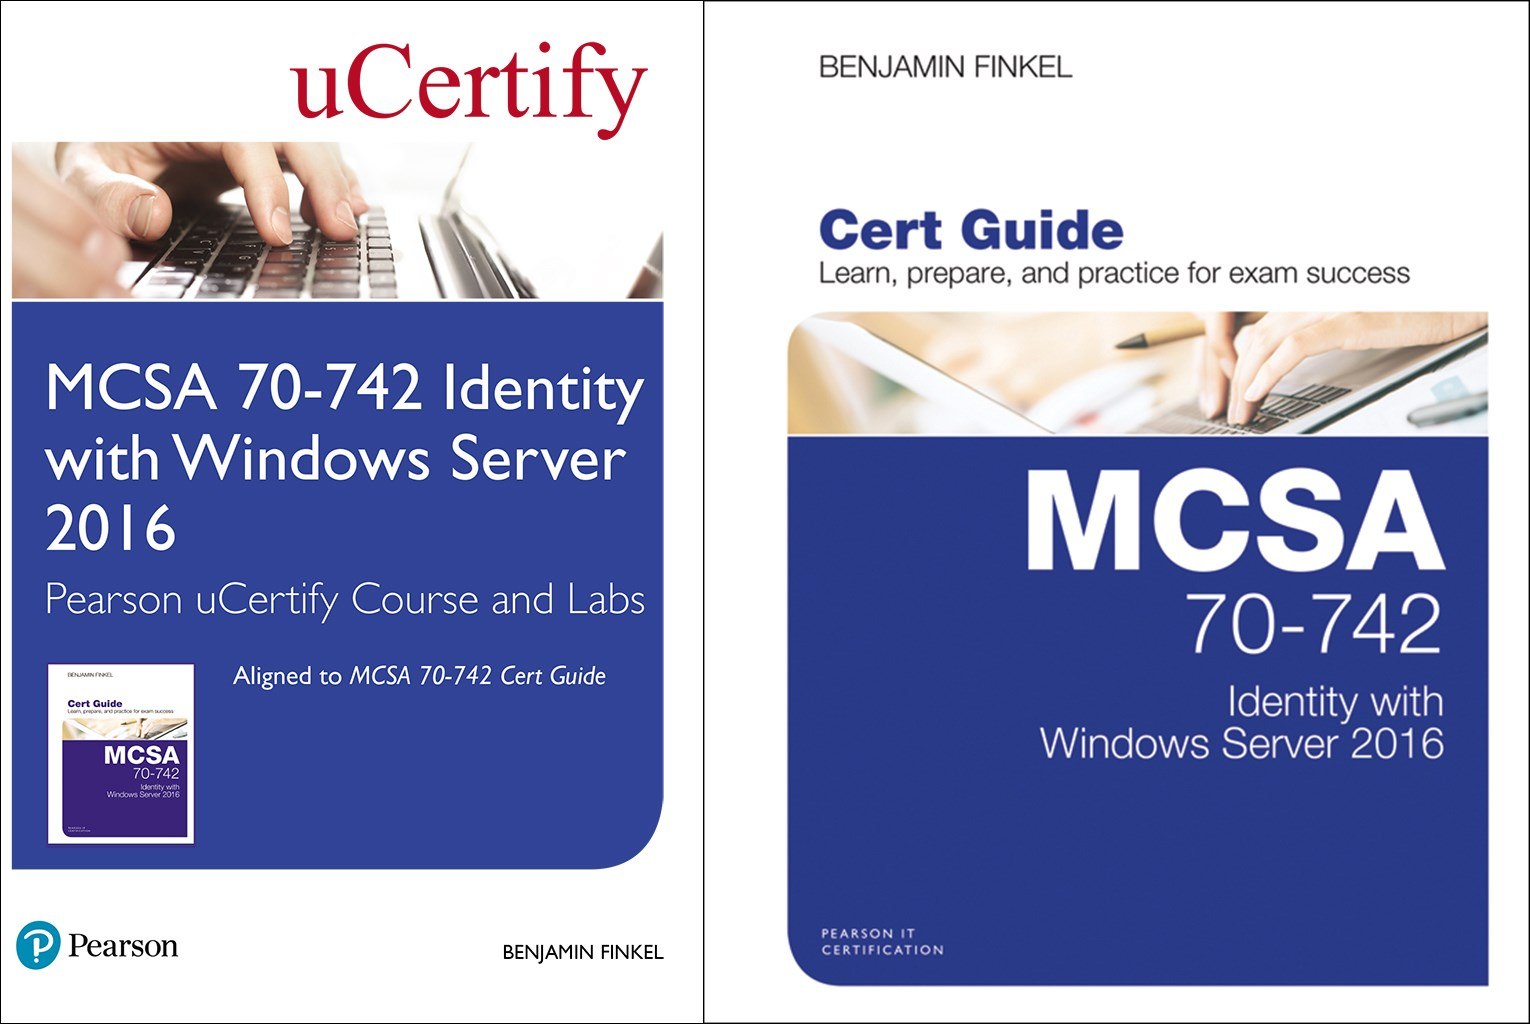 MCSA 70-742 Identity with Windows Server 2016 Pearson uCertify Course and Labs and Textbook Bundle